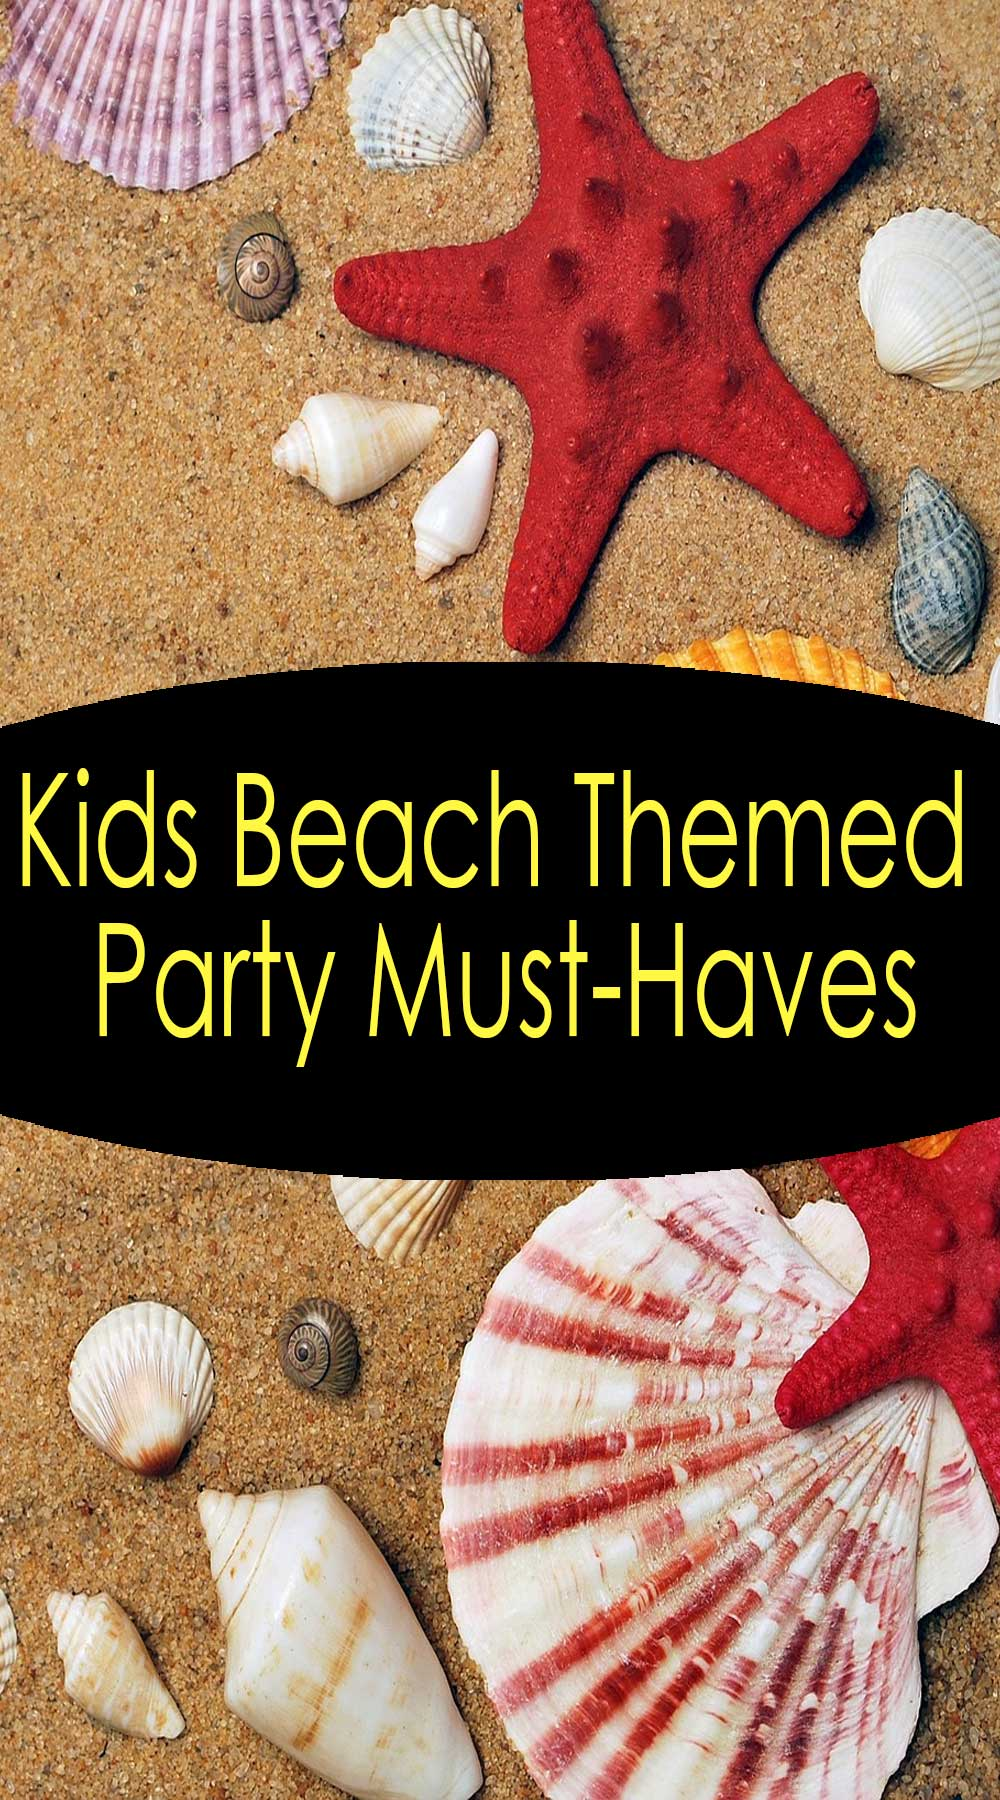 Kids BeachThemed Party Must-Haves